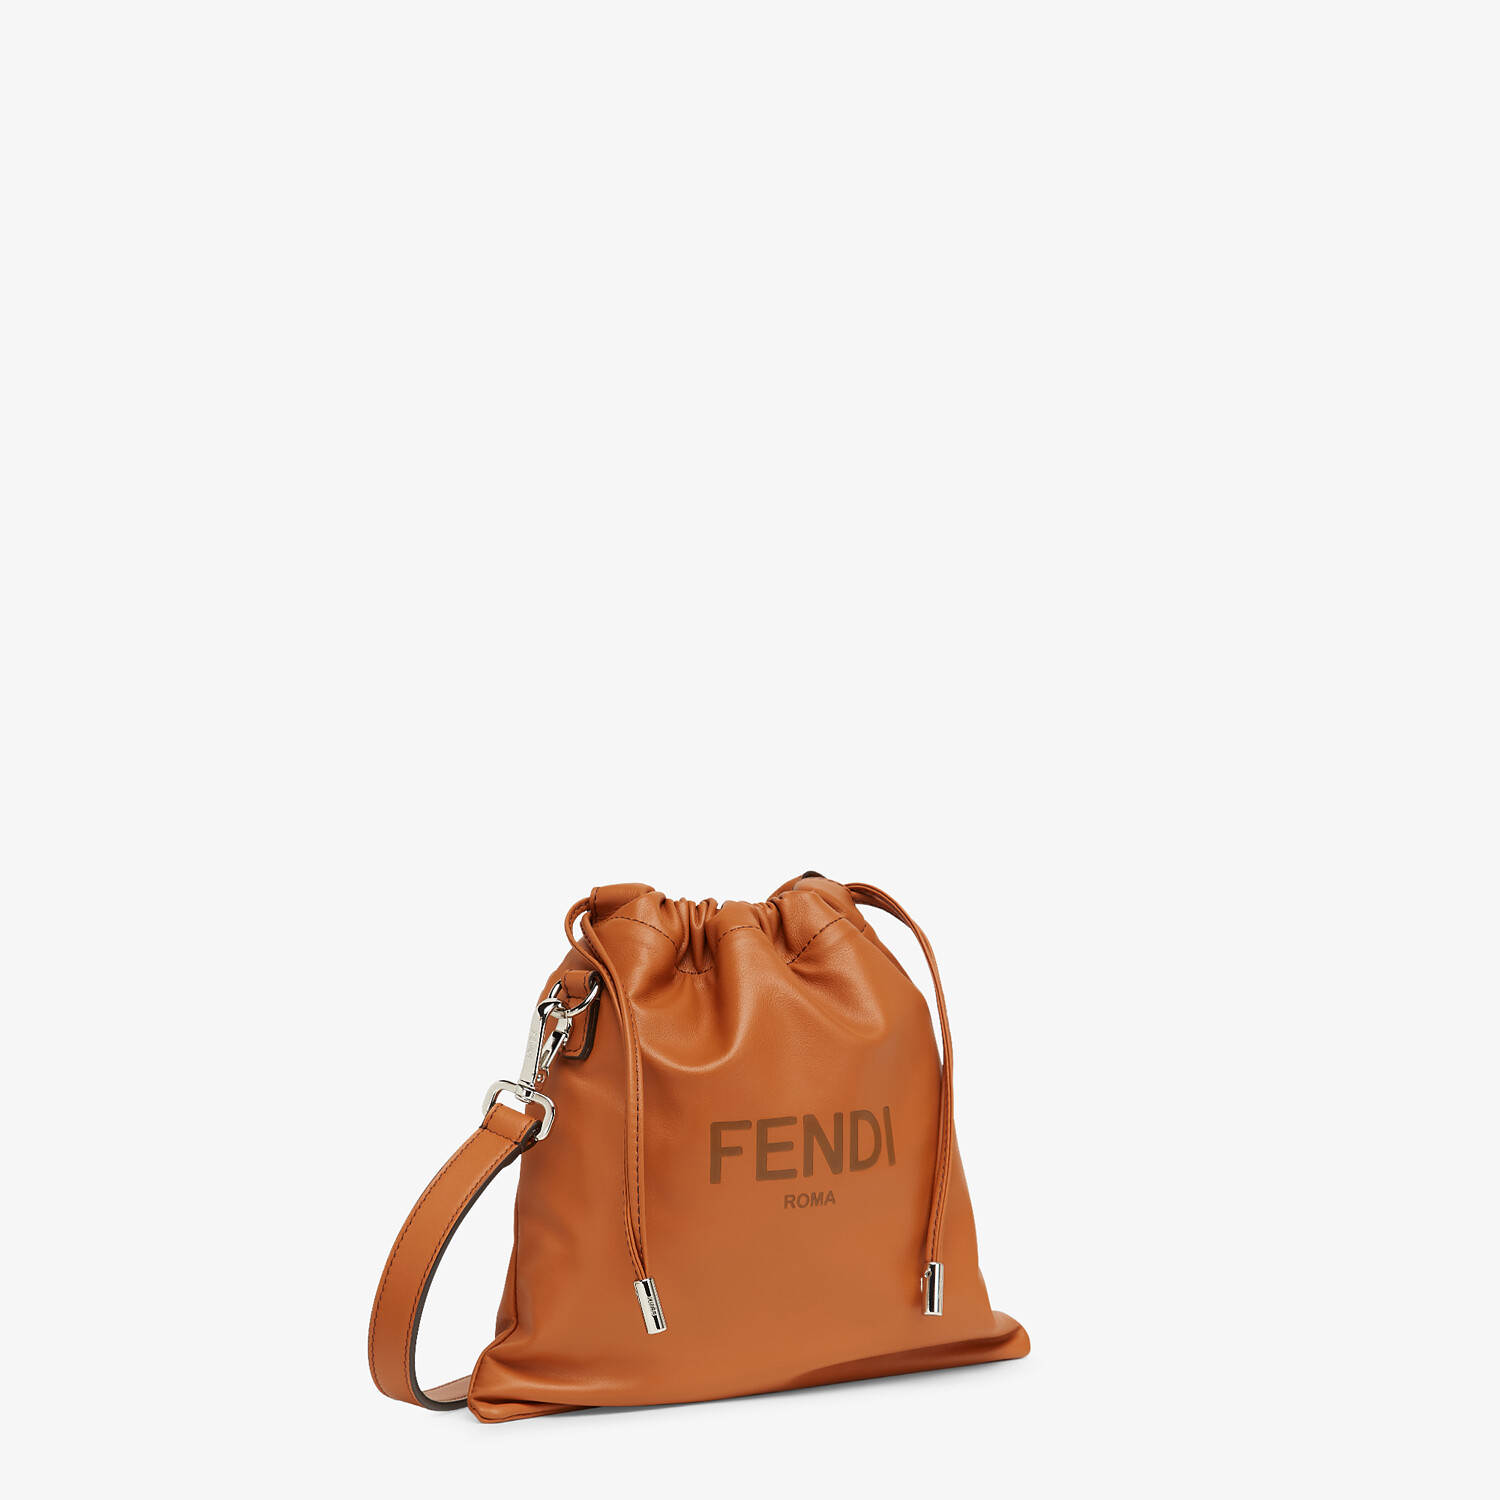 FENDI FENDI PACK SMALL POUCH - Brown leather bag - view 2 detail